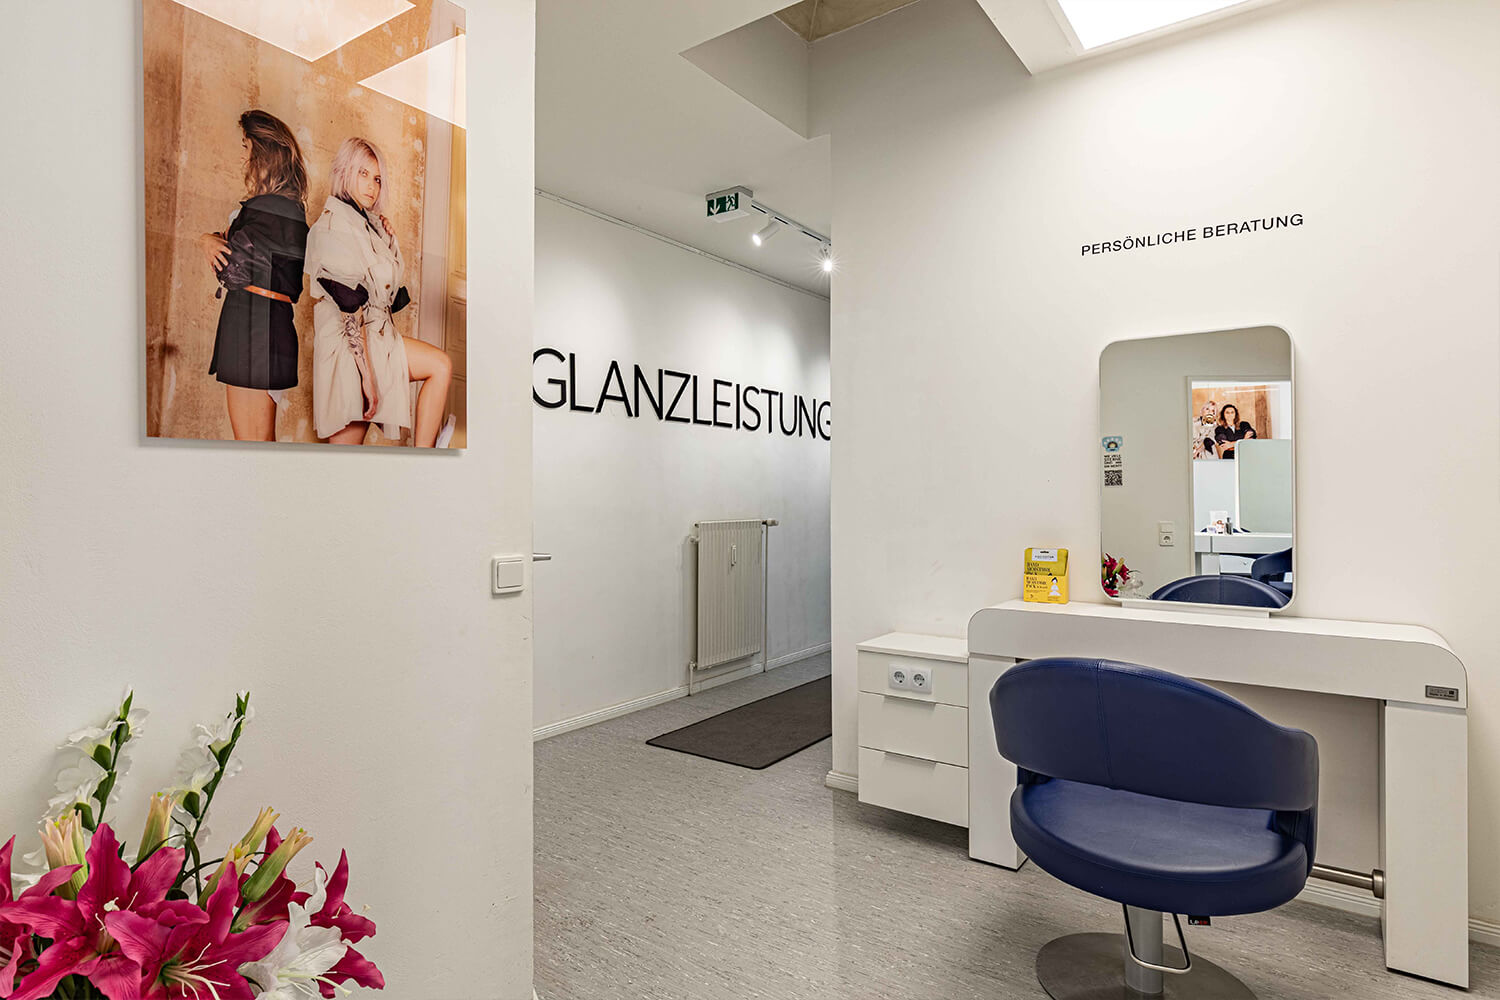 GLANZLEISTUNG for hair and care